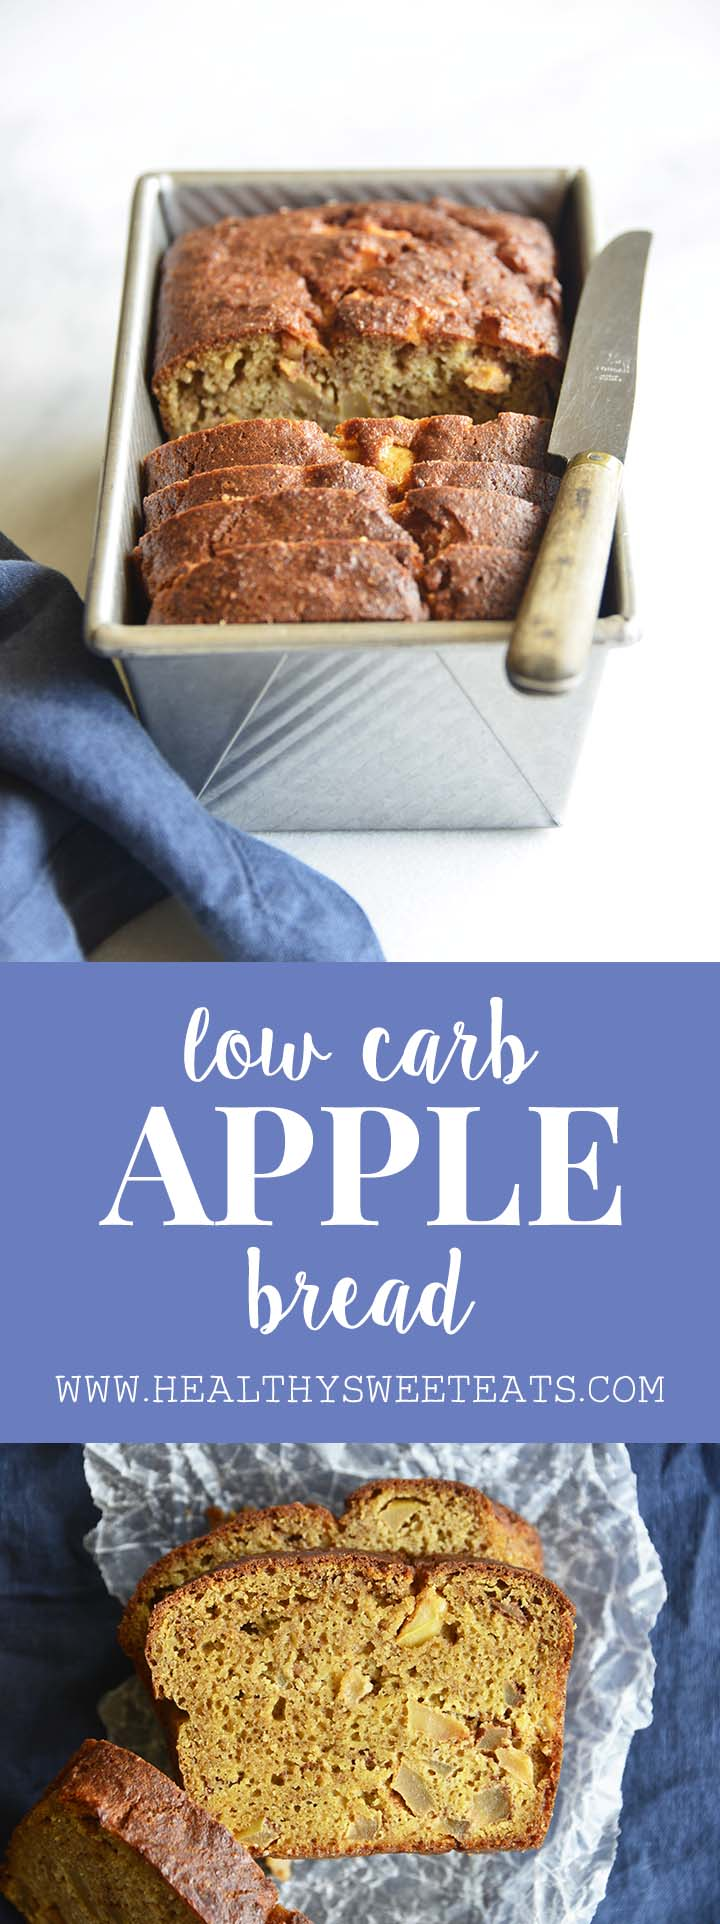 Low Carb Apple Bread Recipe Pin